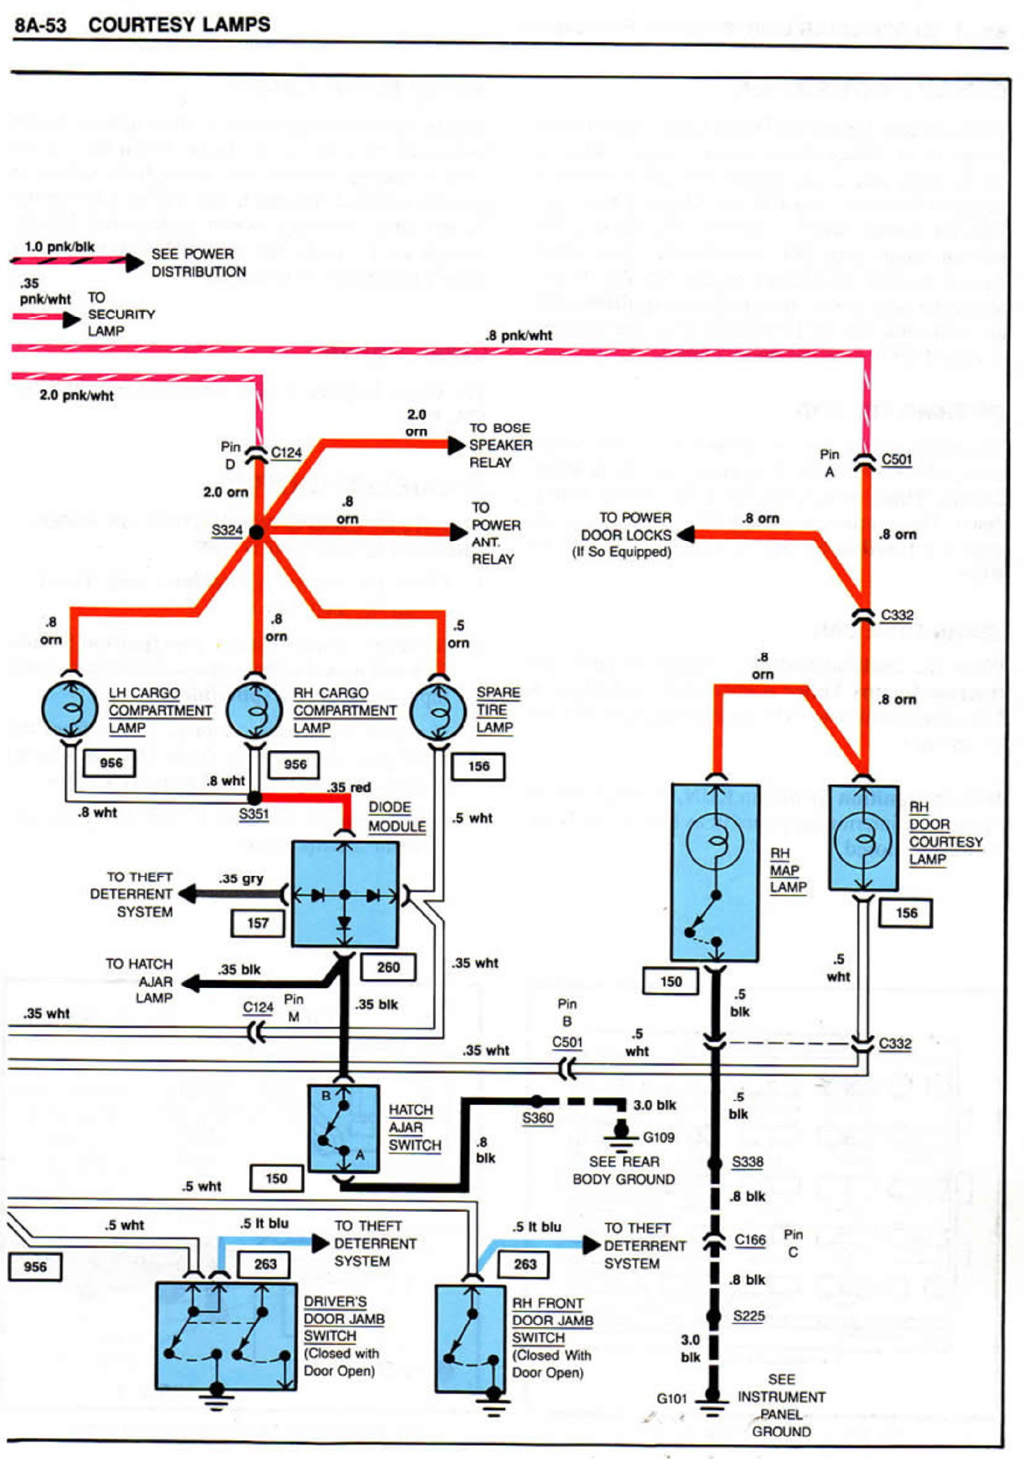 1984 Corvette Radio Wiring 2001 Engine Wiring Diagram For ... on 84 corvette front suspension, c4 corvette diagrams, 84 corvette fuse diagram, corvette electrical diagrams, 84 corvette fuel pump relay diagram, 84 corvette owners manual, 84 corvette charging system, 84 corvette wiring harness, 1979 c3 corvette diagrams, 84 corvette exhaust, 84 corvette battery, 84 corvette chassis, corvette schematics diagrams, 84 corvette parts, 84 corvette problems, 84 corvette vacuum diagram, 84 corvette transmission, corvette small block chevy vacuum diagrams, 84 corvette fuel system, 84 corvette seats,